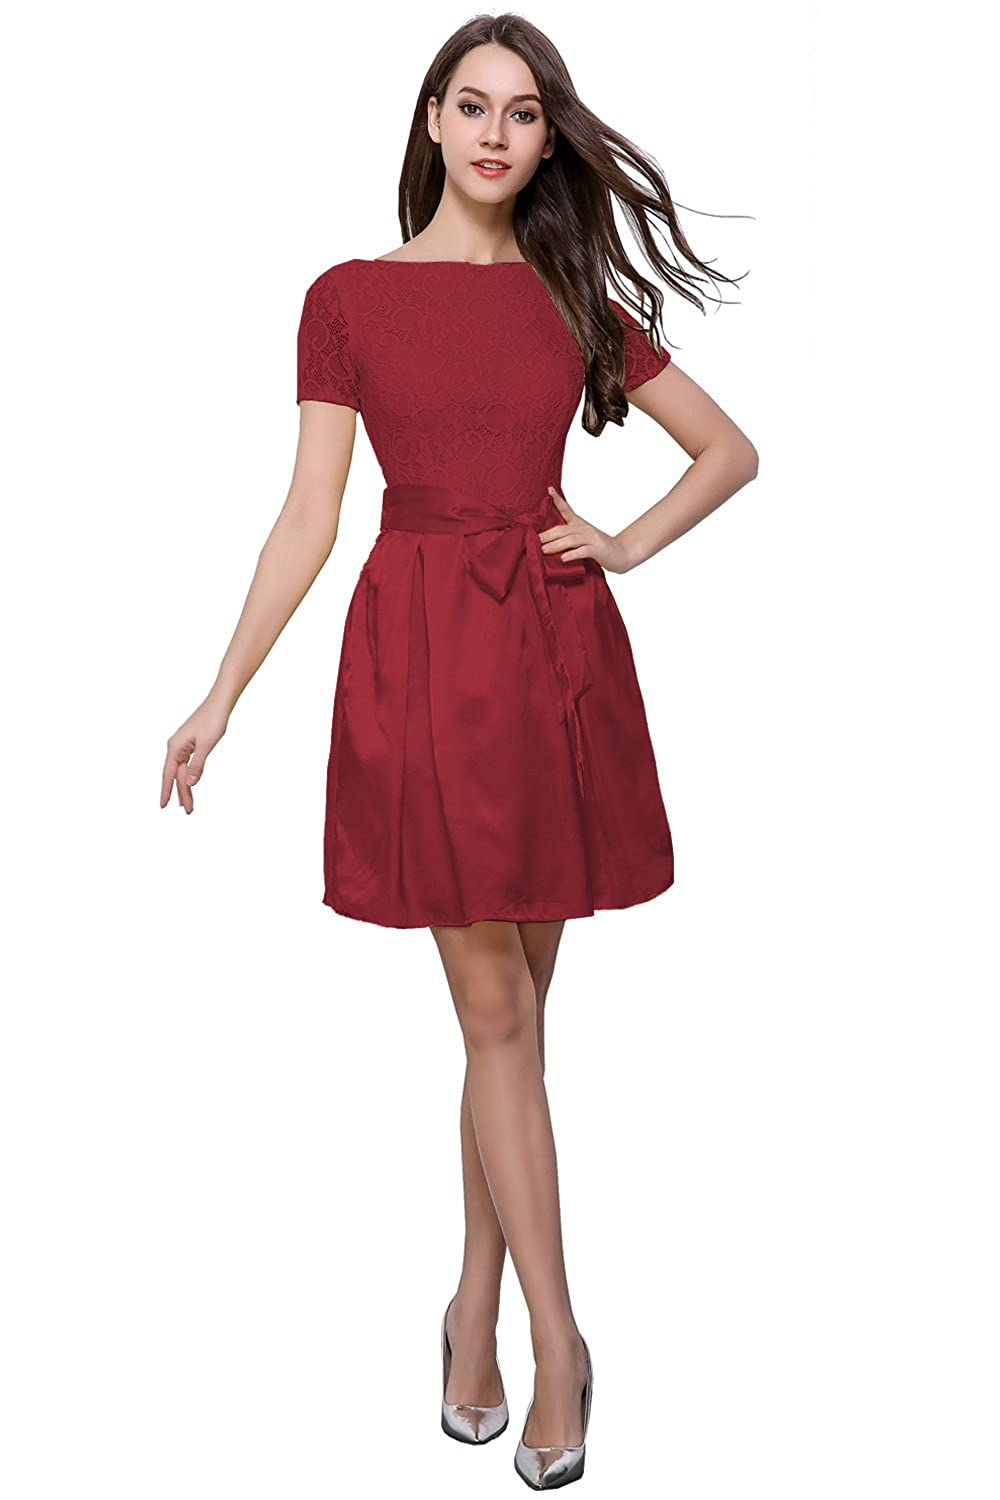 Amazon.com: Beautifly Cute Belt Lace&Satin Short Evening Party Prom Women Dress Burgundy 4: Clothing